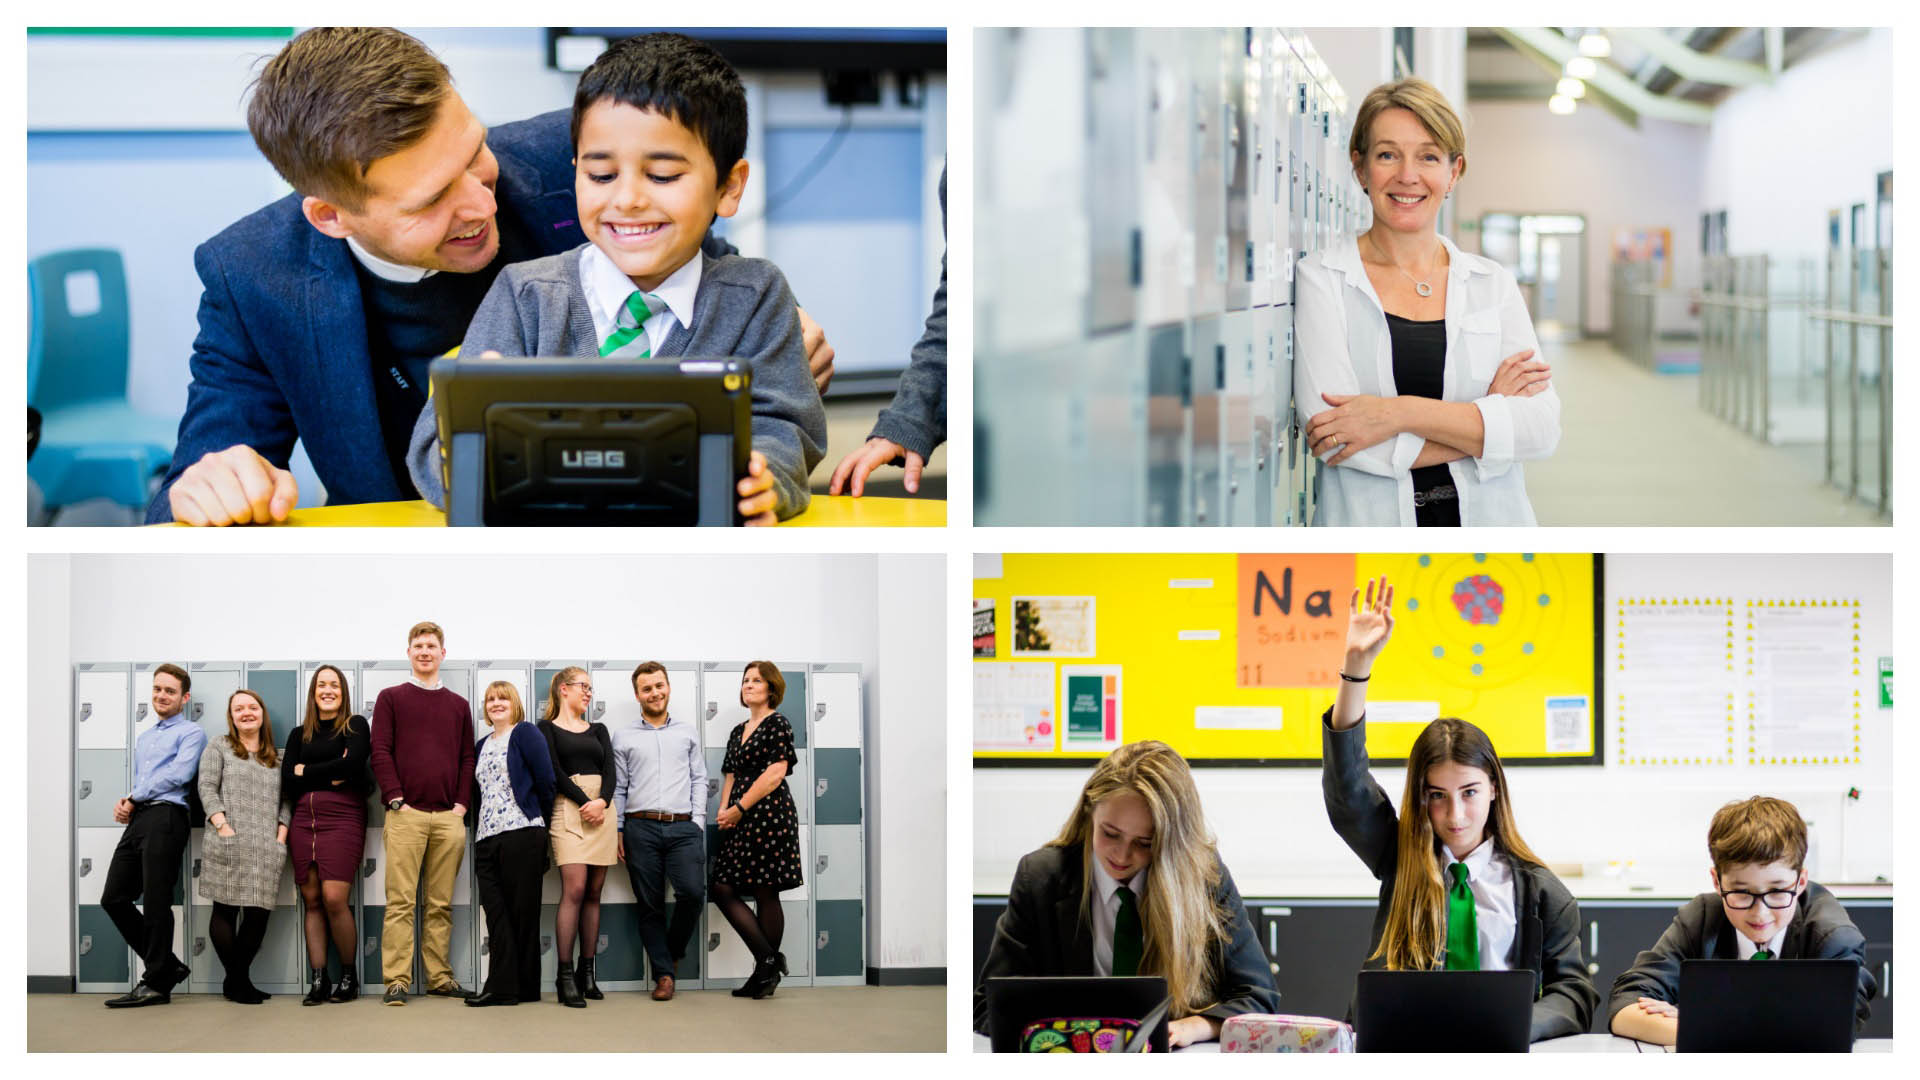 Wand Romania Educational Software Marketing Photography by Chris Fossey Photography Exeter